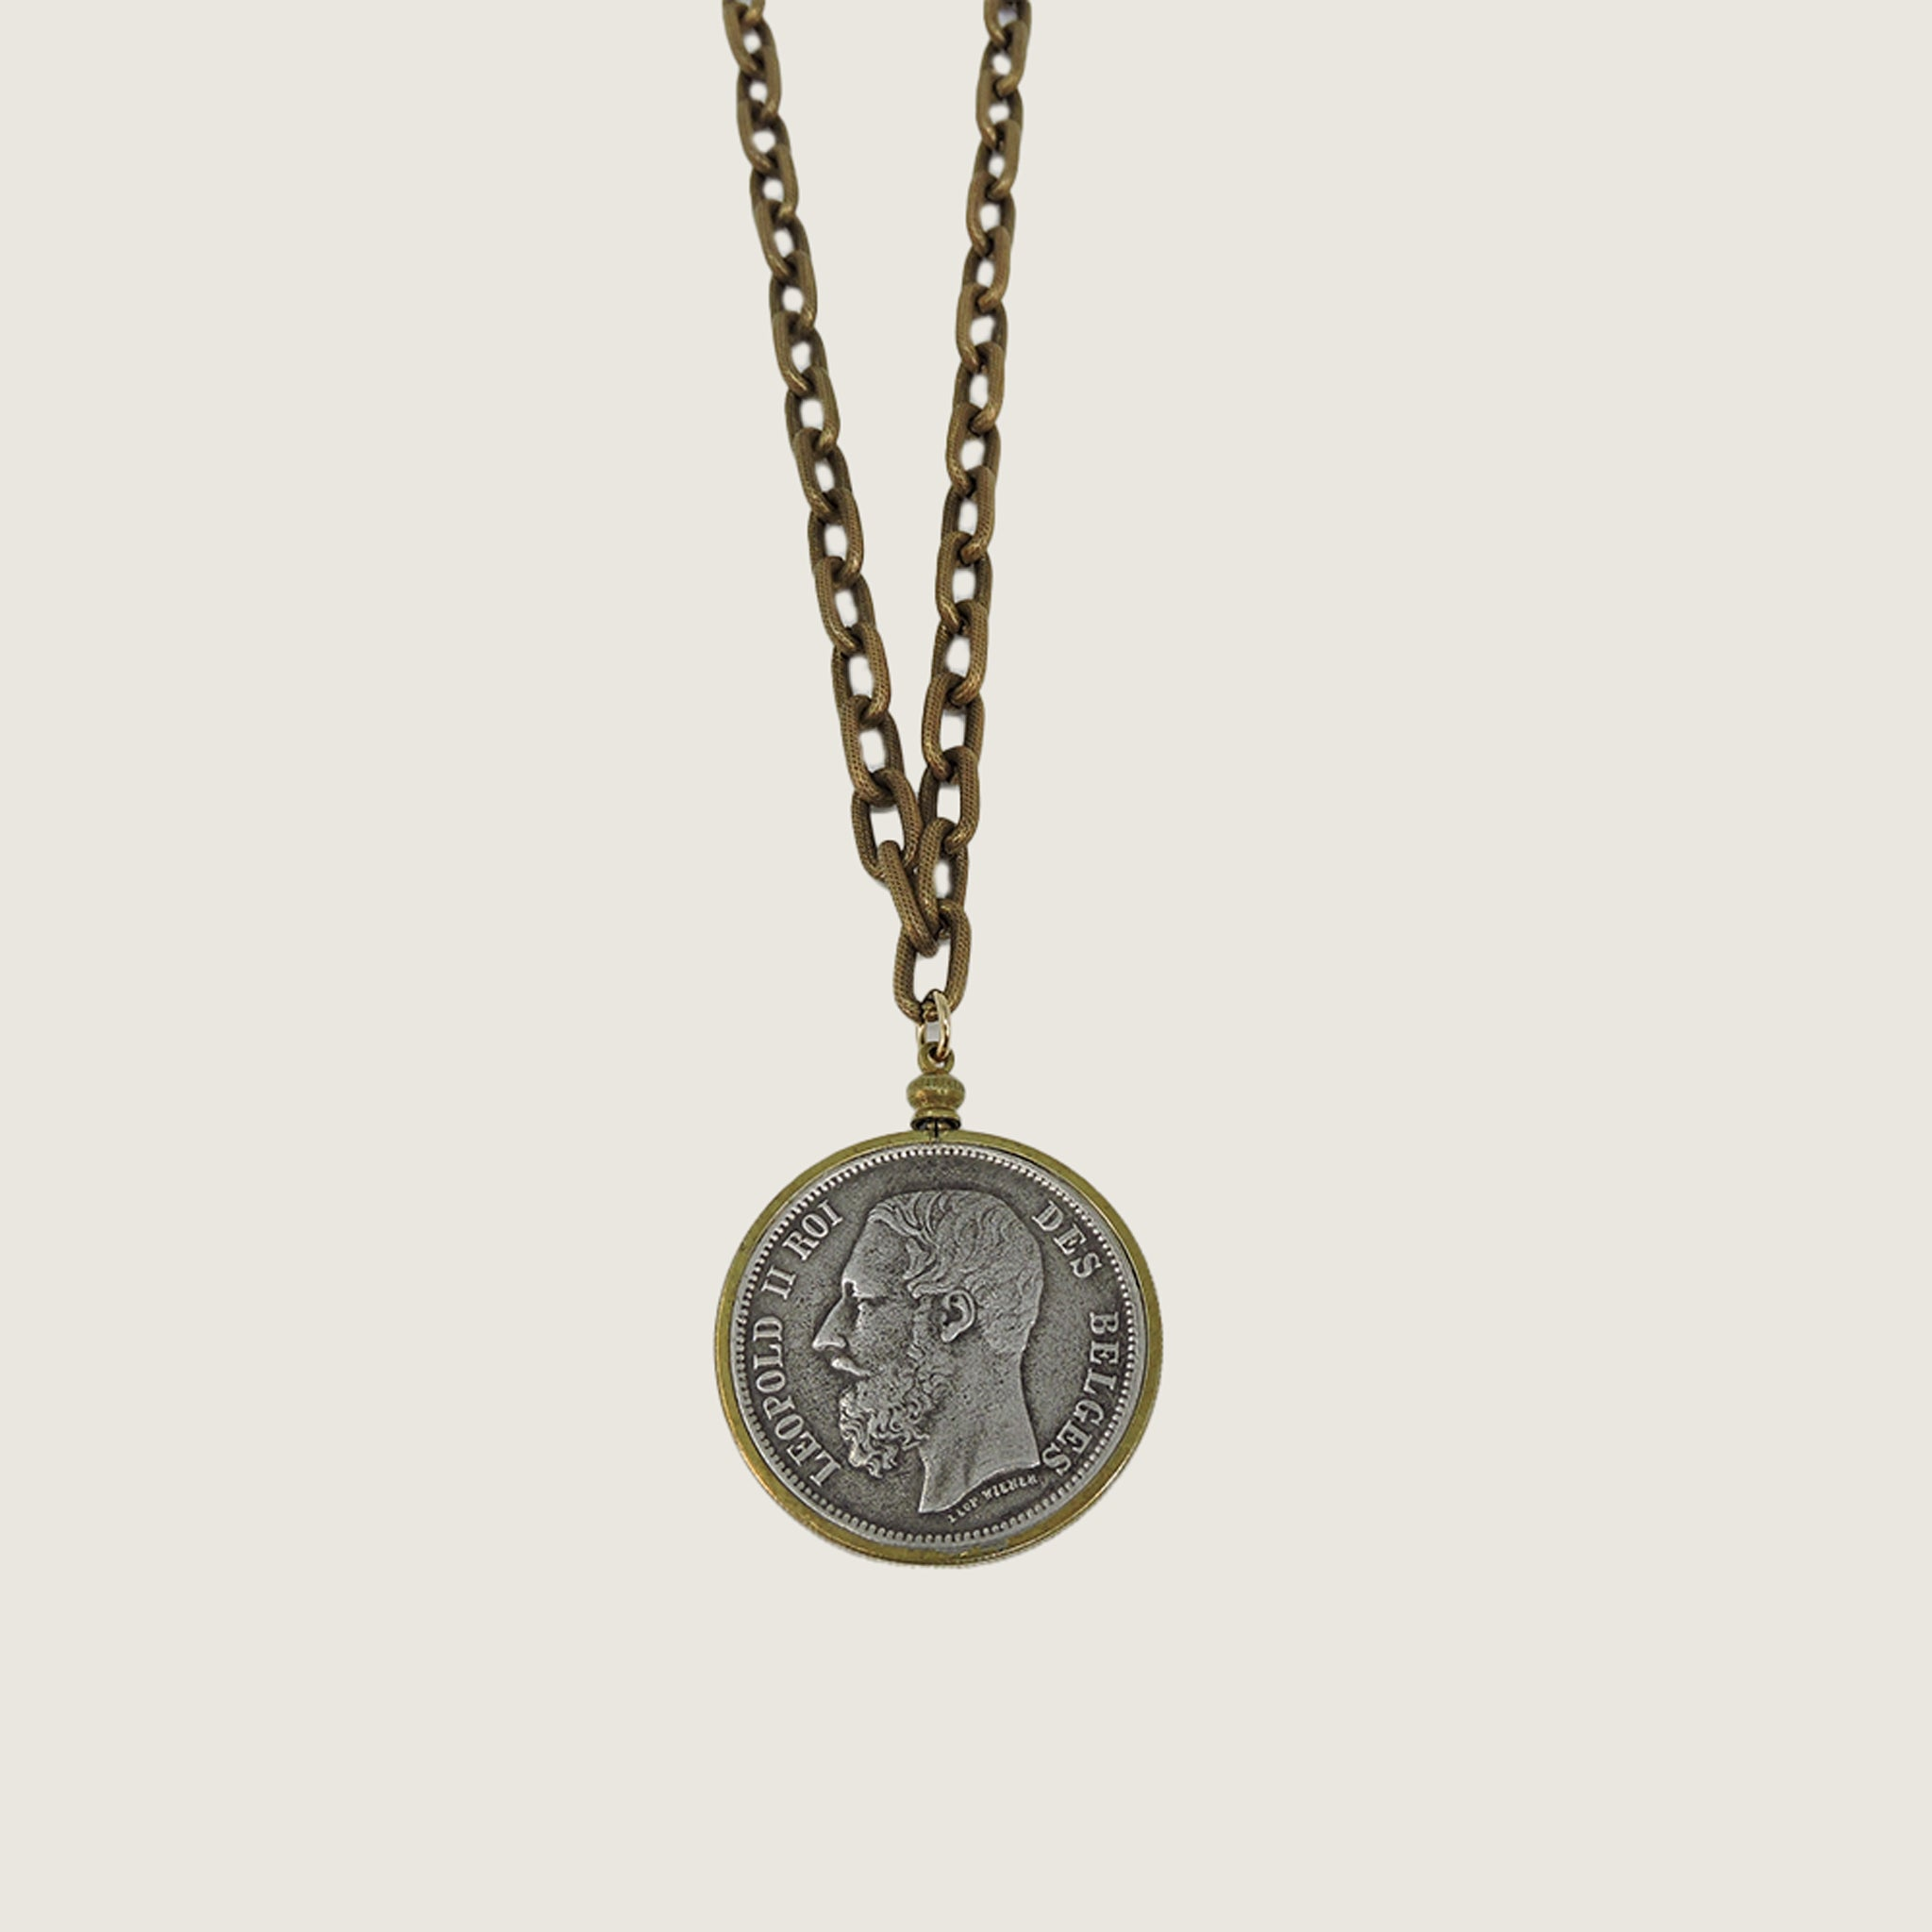 Belgium Coin Necklace